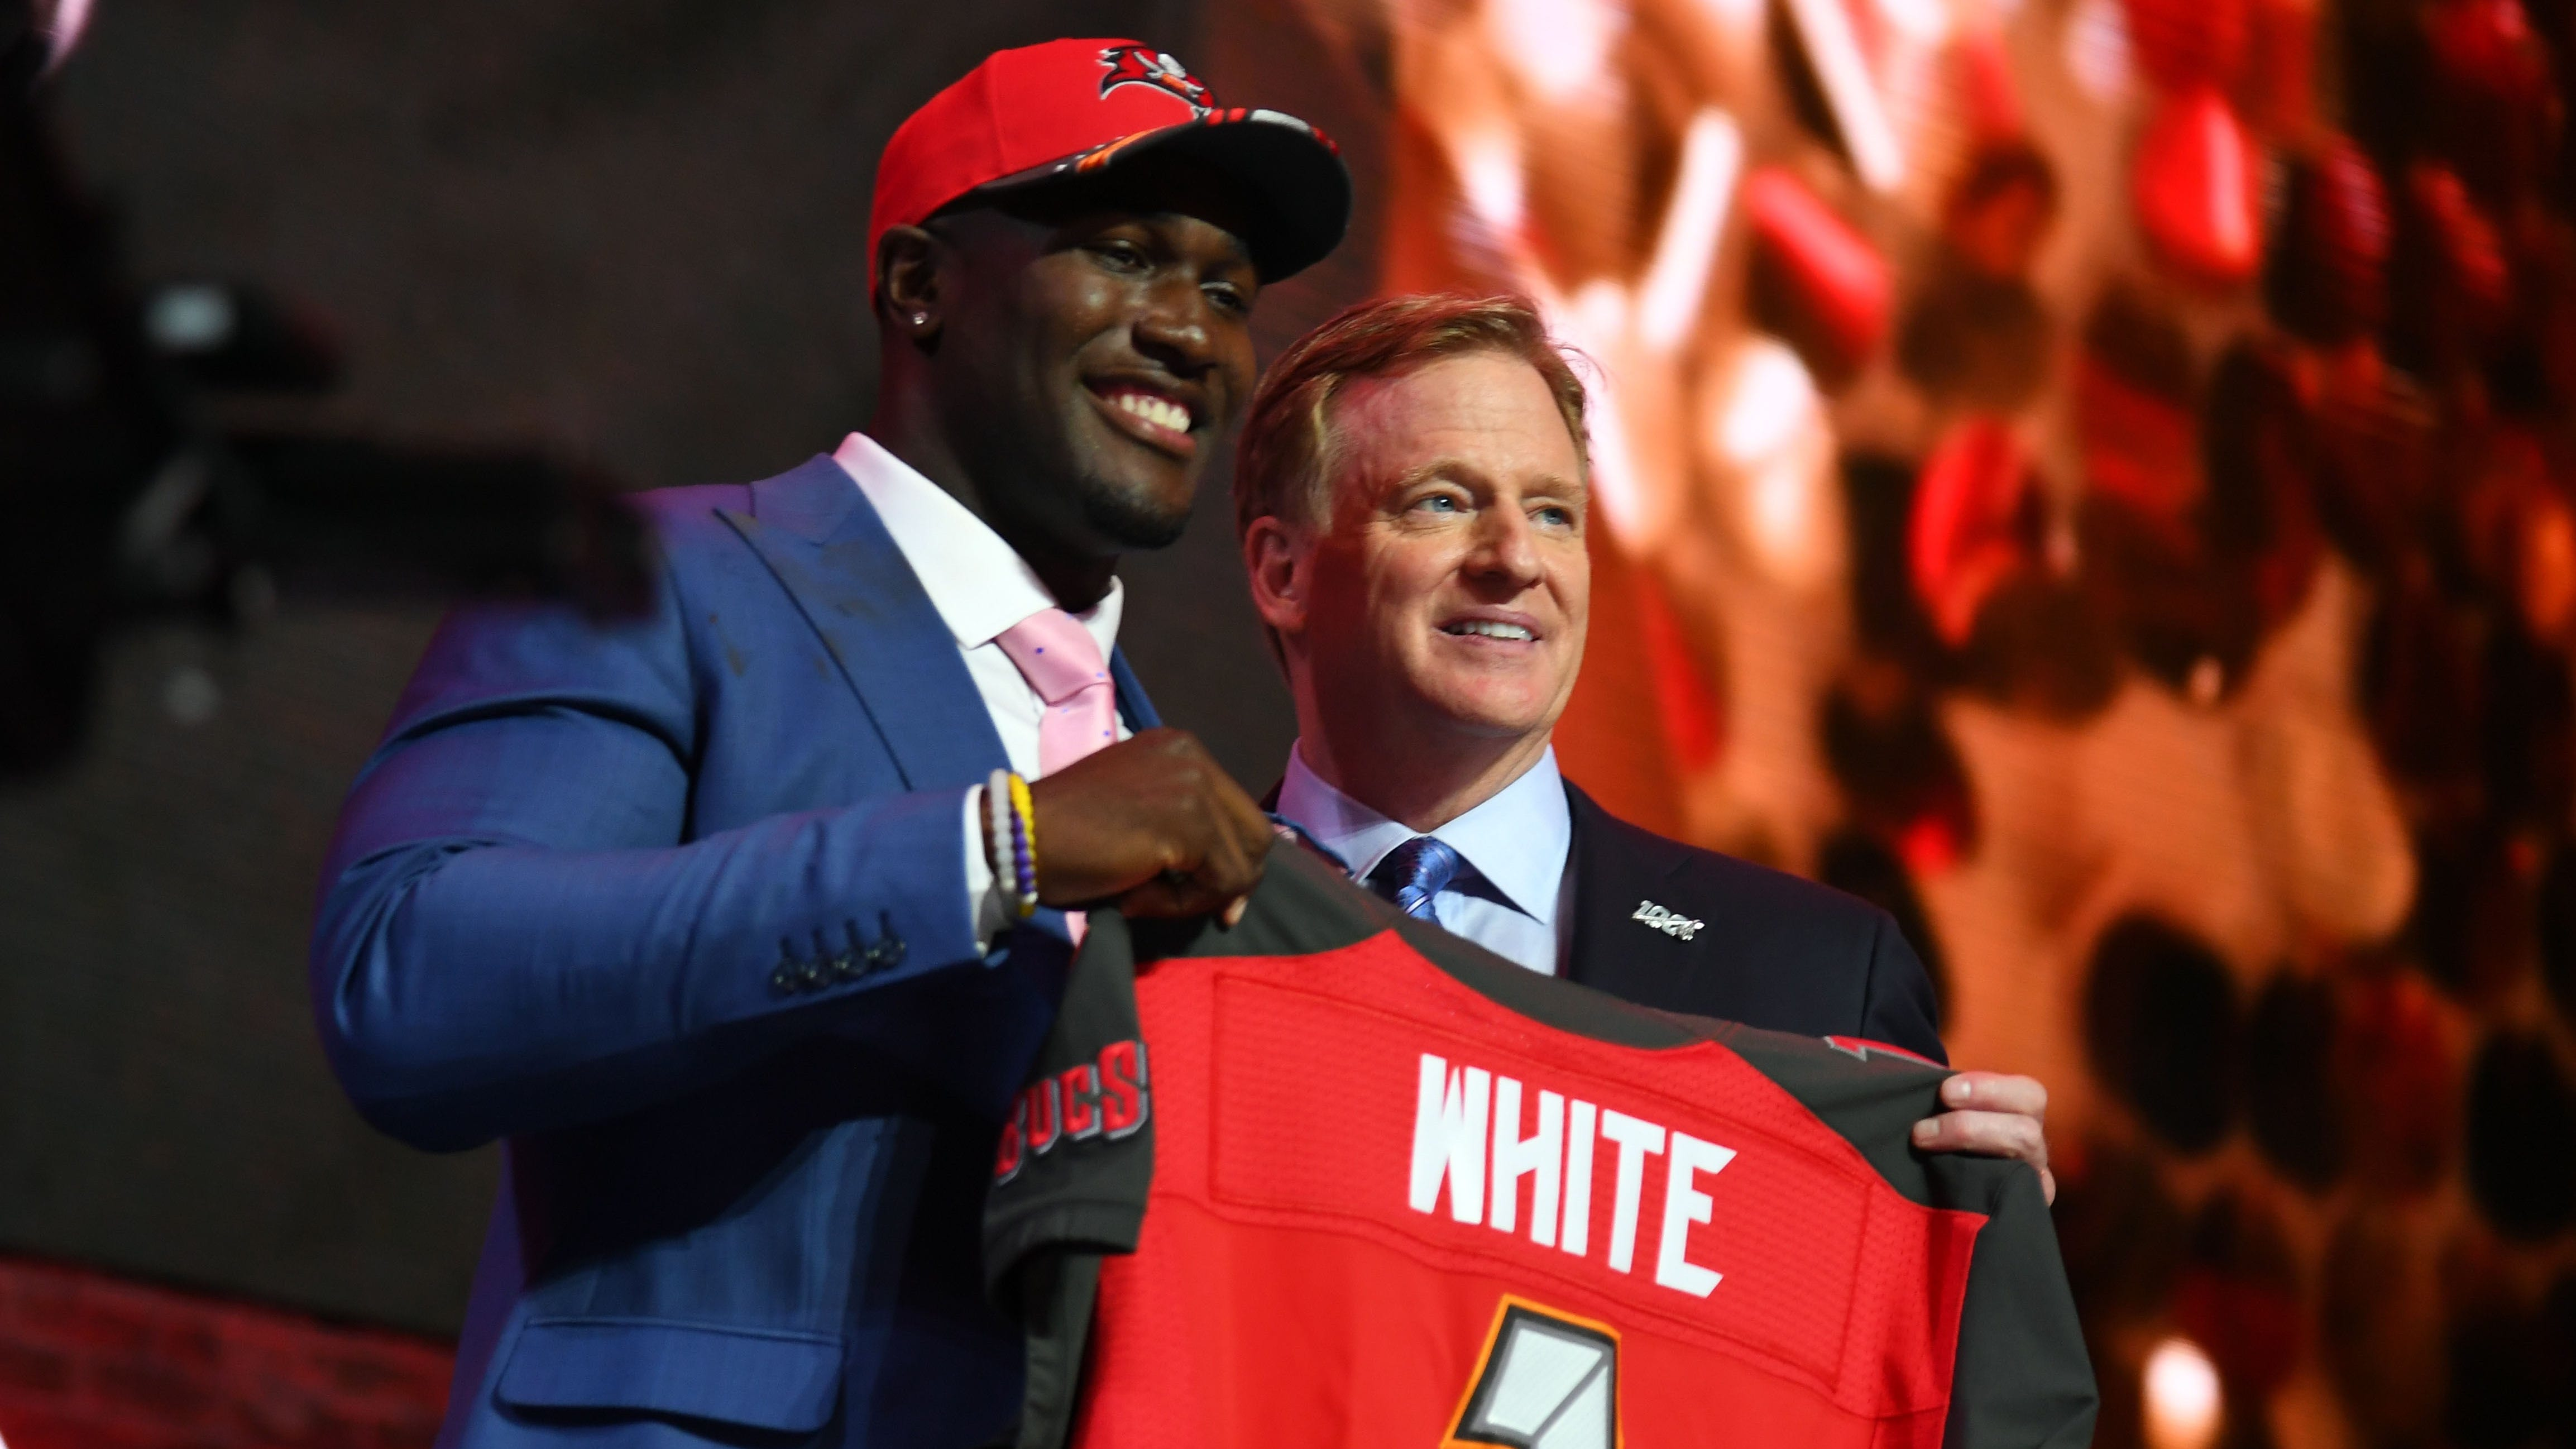 Tampa Bay makes LSU's Devin White the 1st linebacker taken in 1st round top 5 since 2015